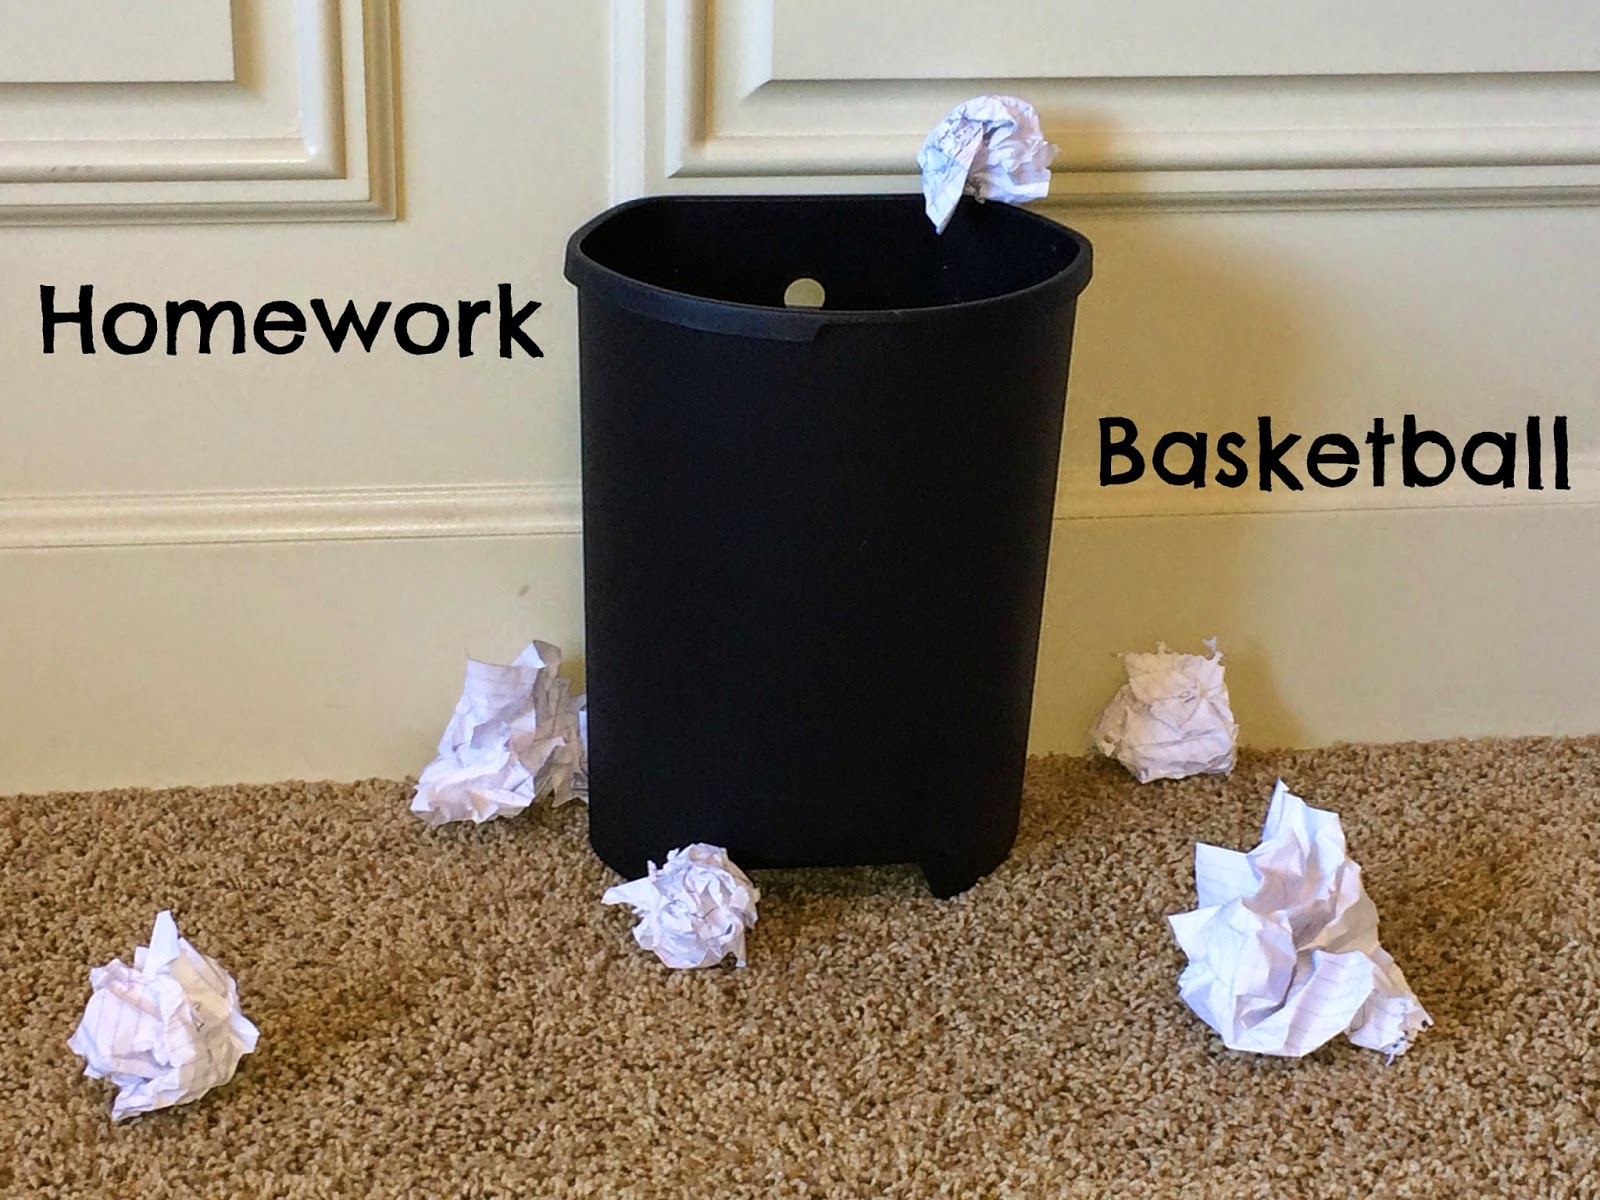 Planning playtime home work tip of the week home work basketball - Basketball waste paper basket ...